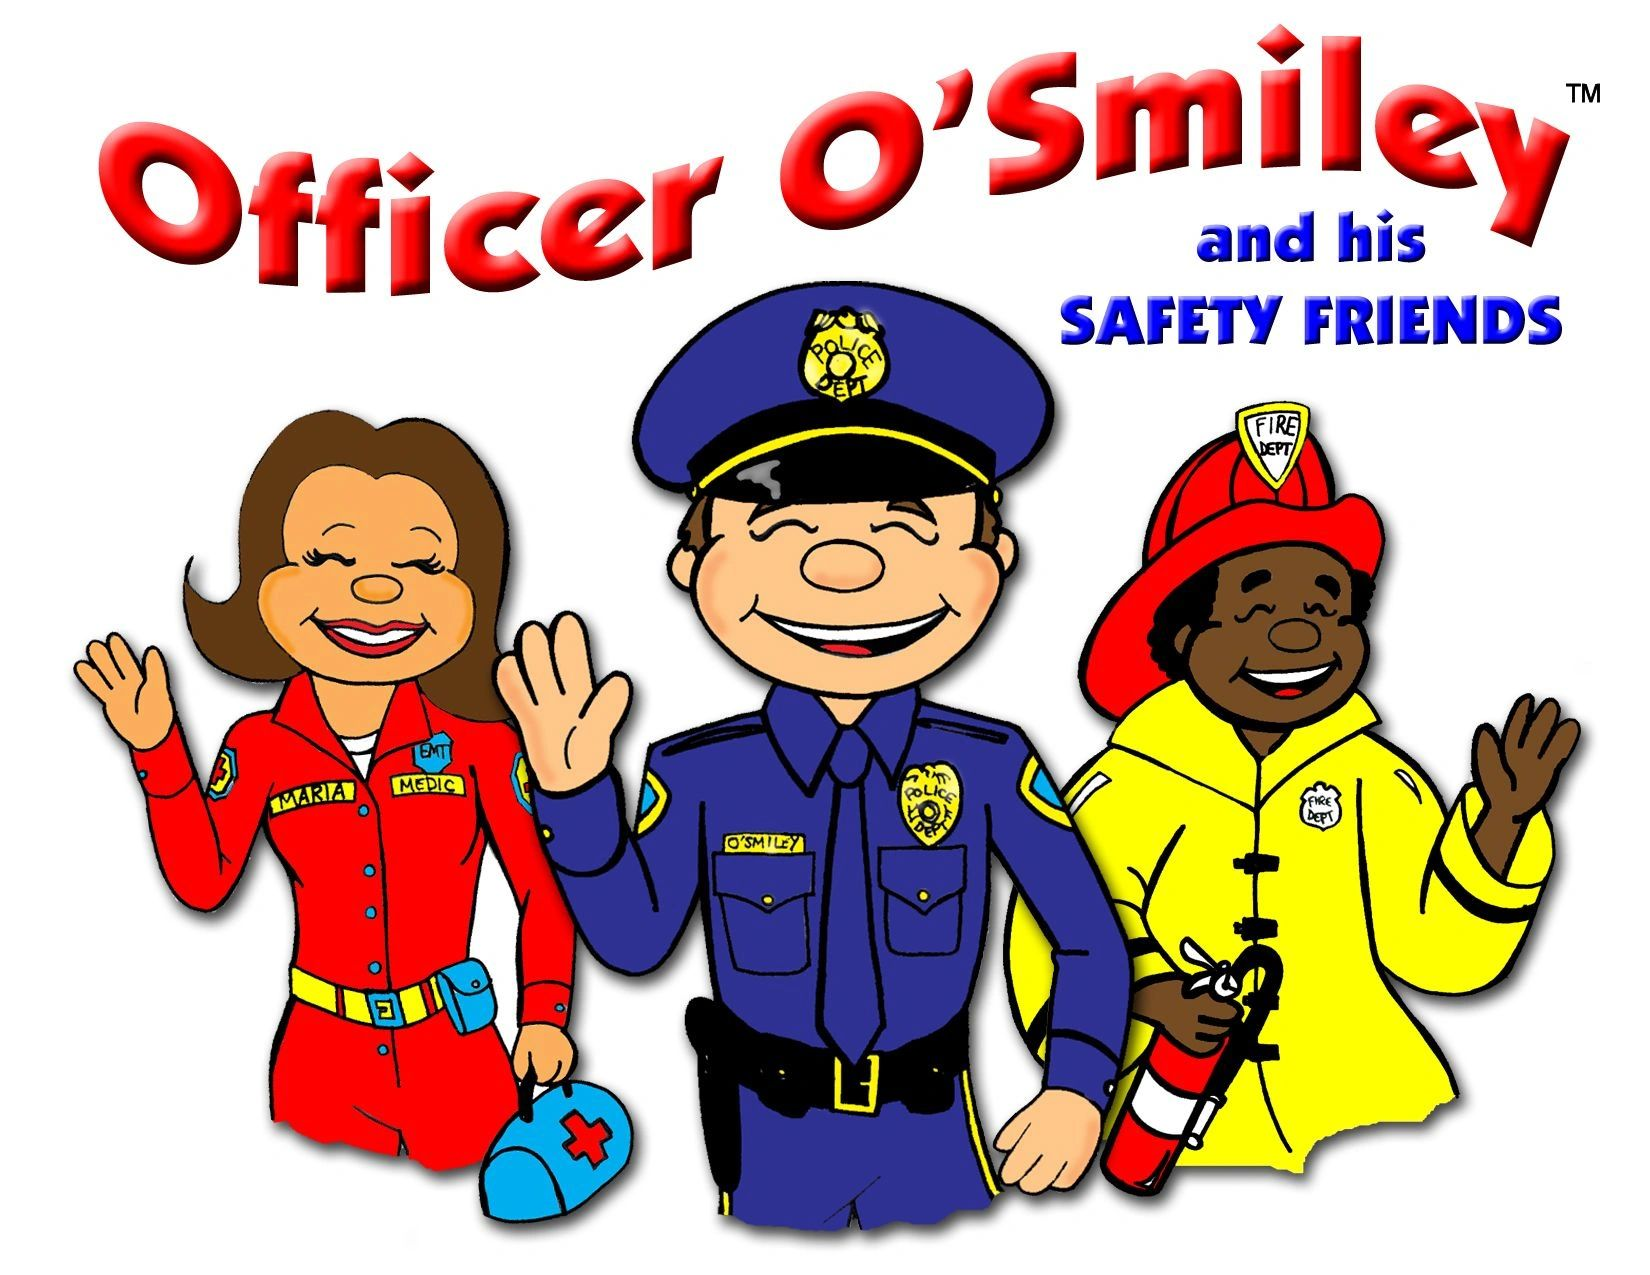 Officer O'Smiley and his Safety Friends™